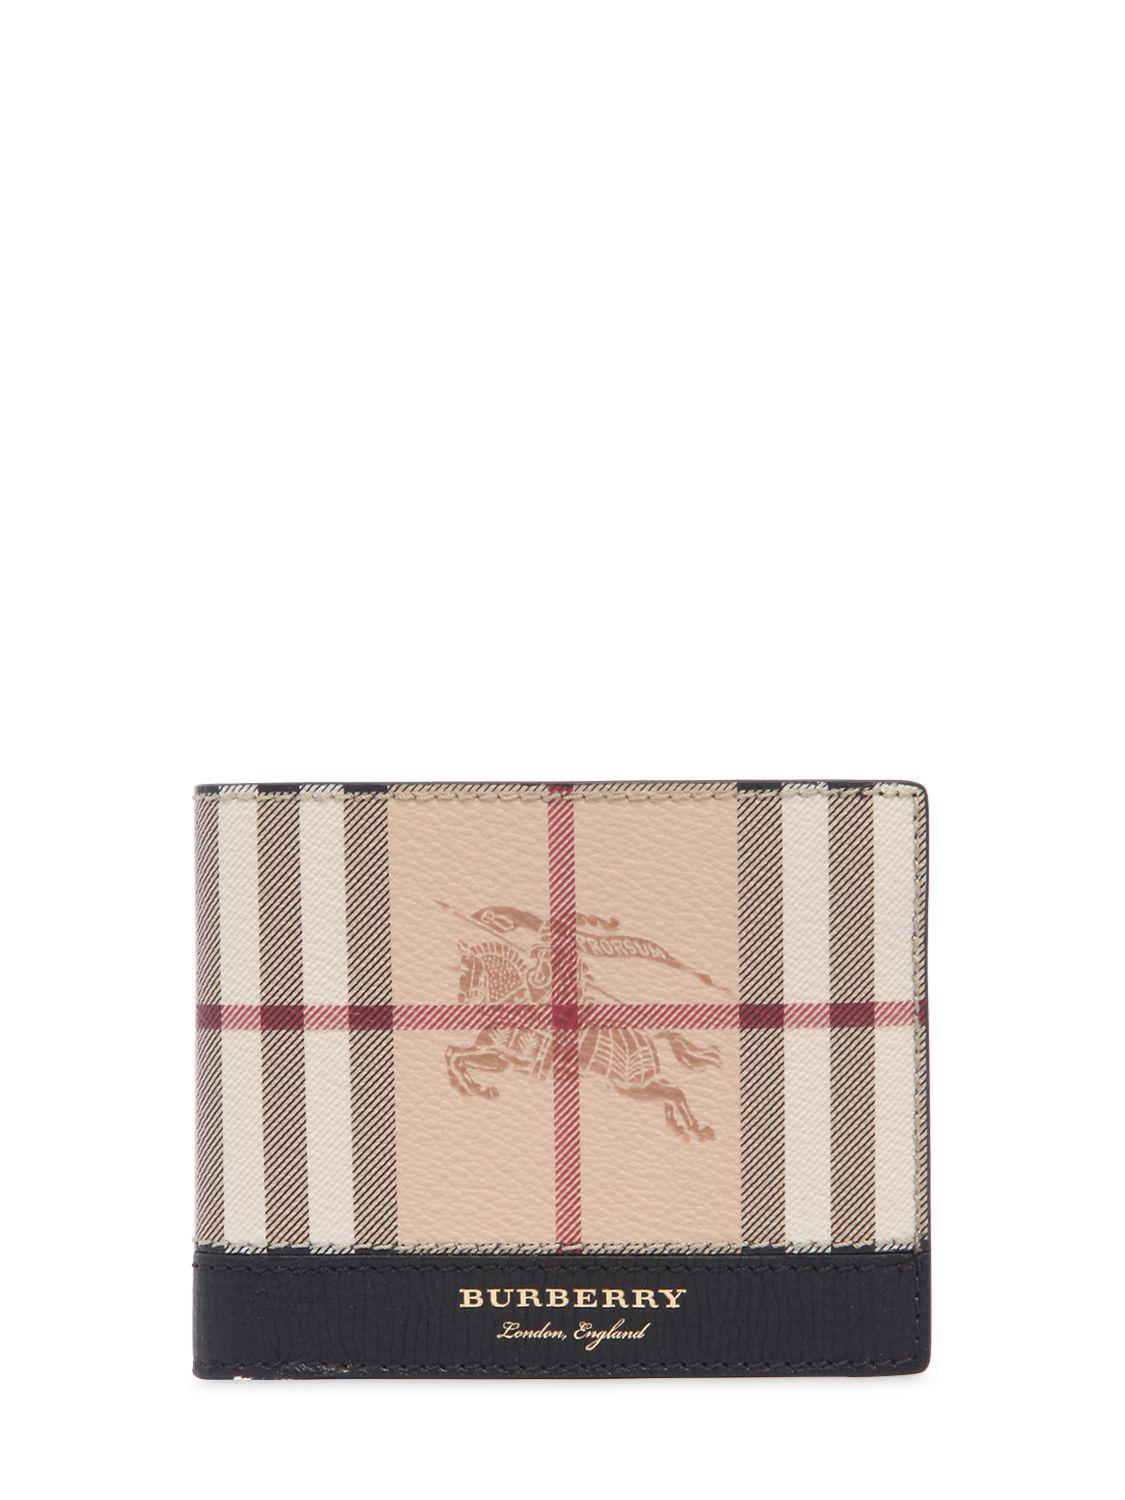 Burberry CHECK & LEATHER CLASSIC WALLET Cheap Sale Extremely With Paypal Cheap Price Real For Sale Cheap Deals Fxo6p